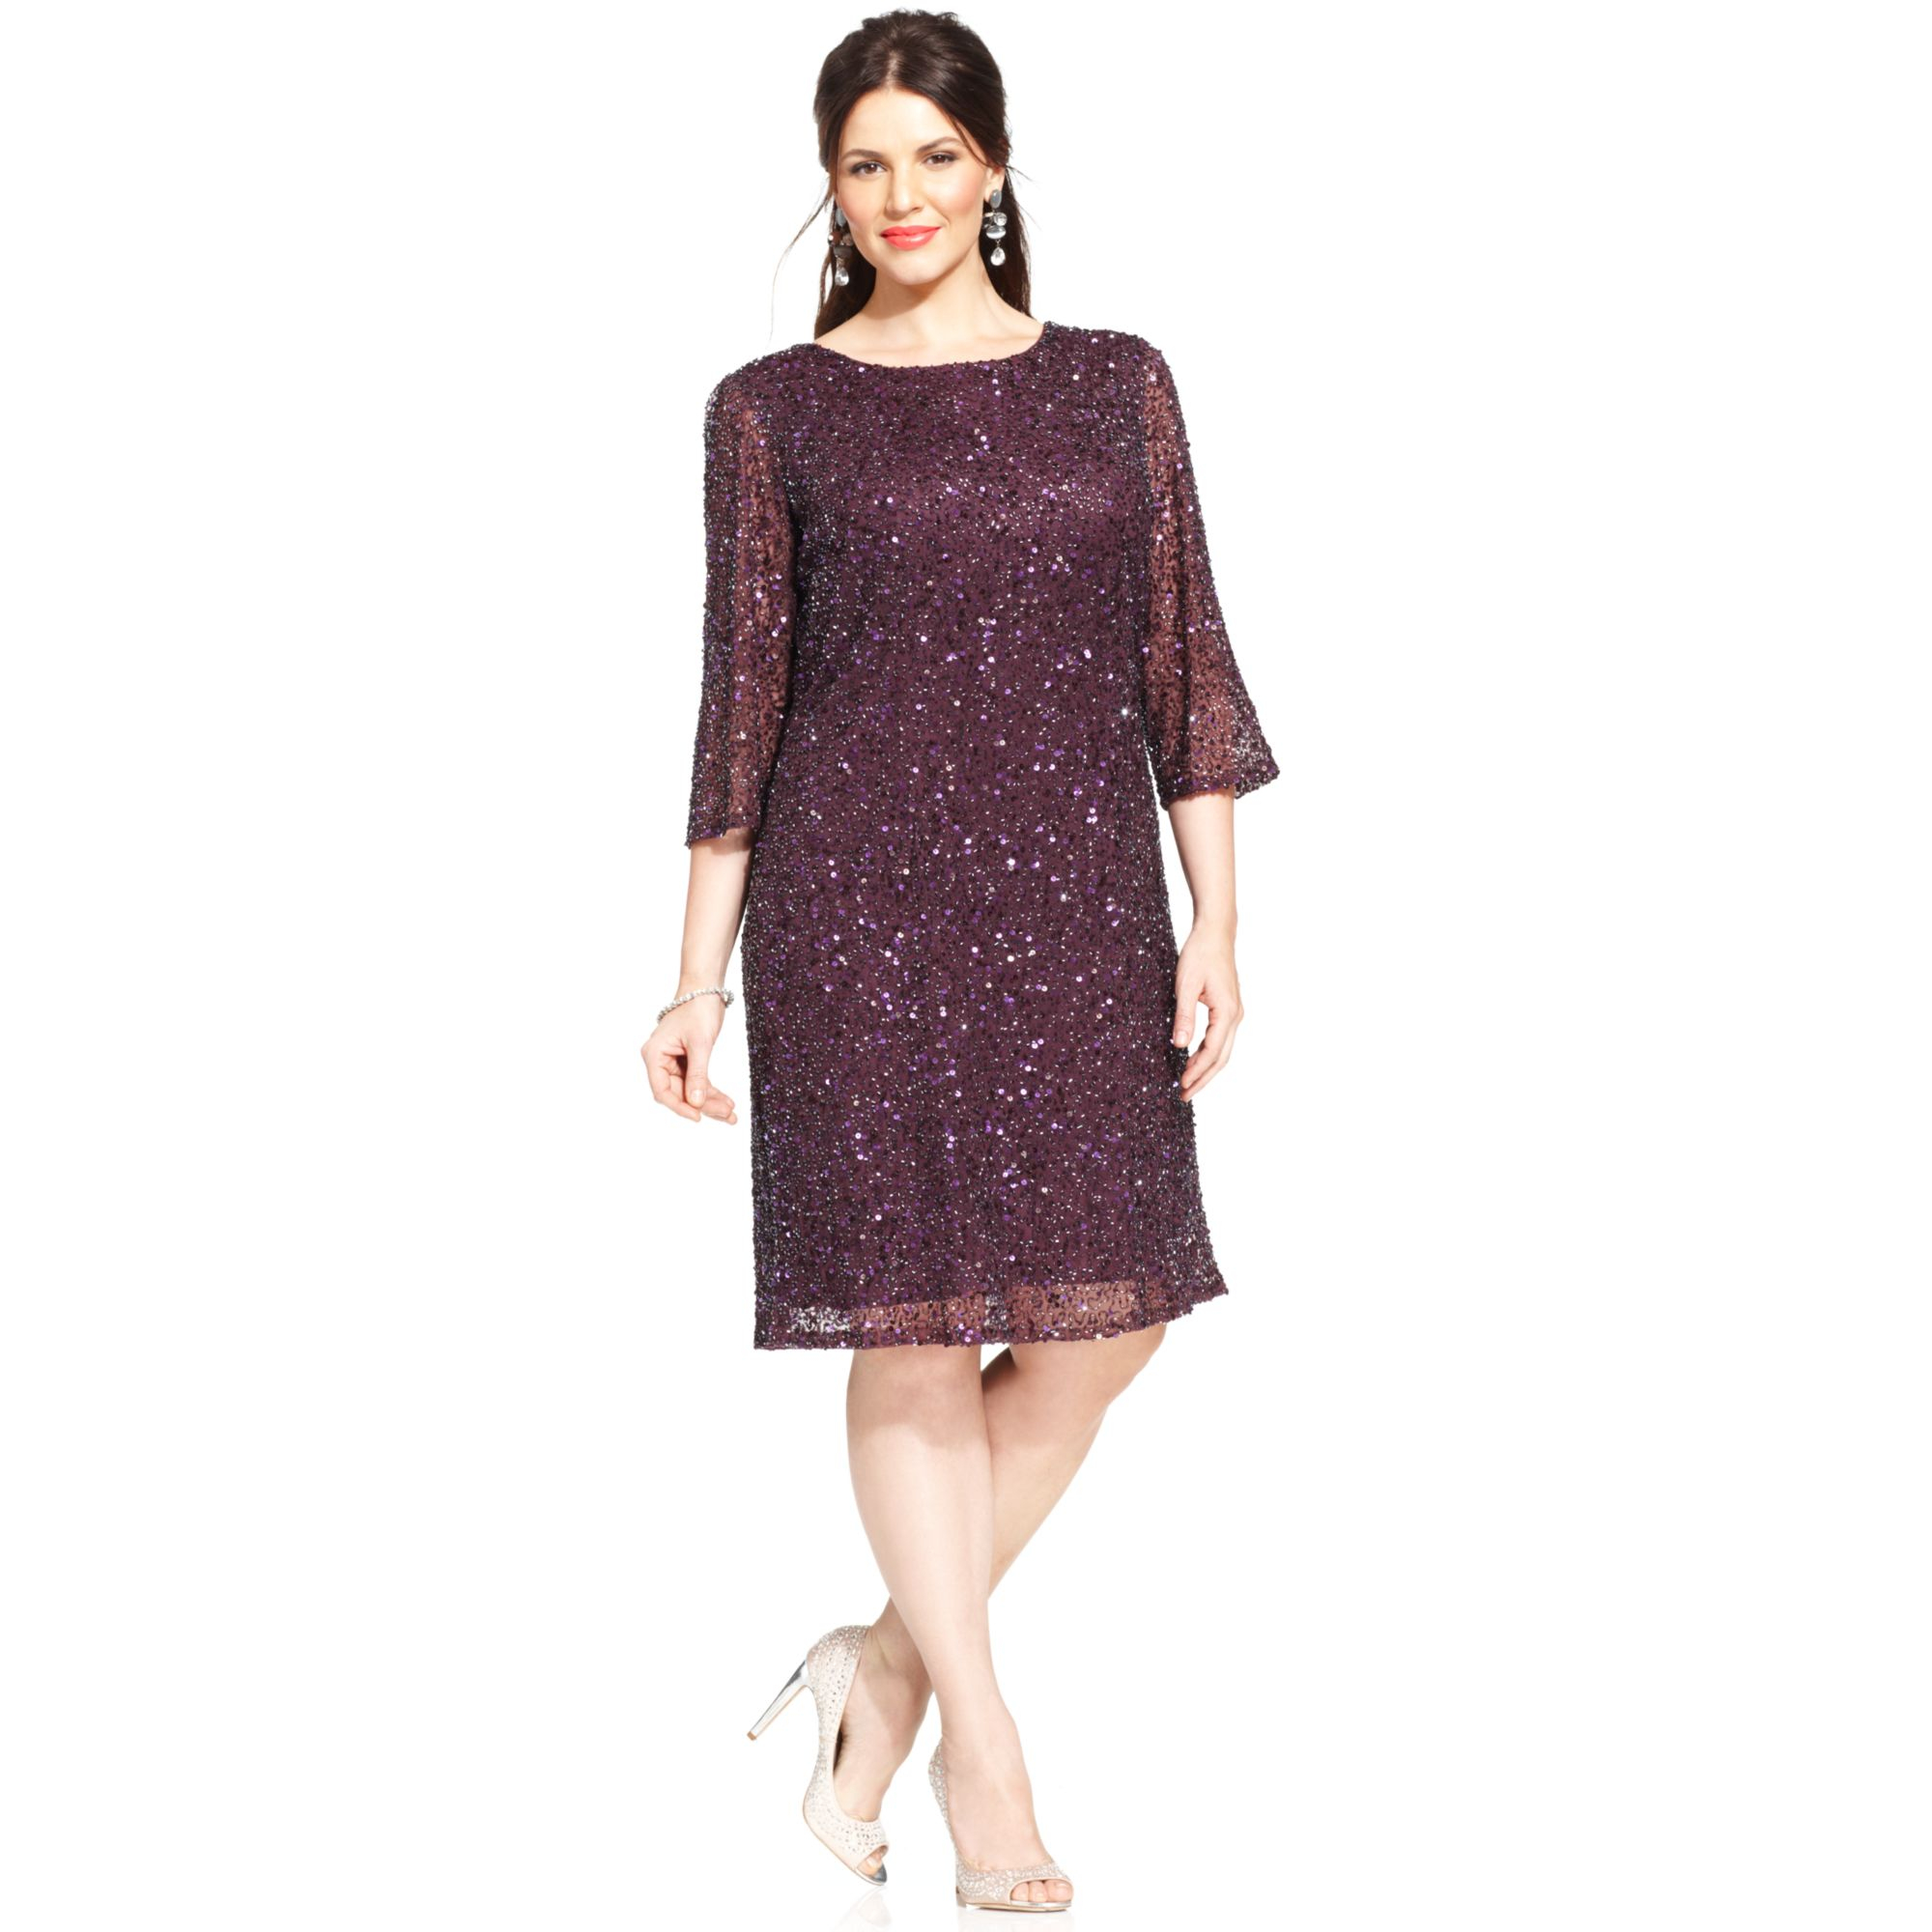 d48a3f72acf Pisarro Nights Beaded Mesh Dress Plus Size - Dress Foto and Picture